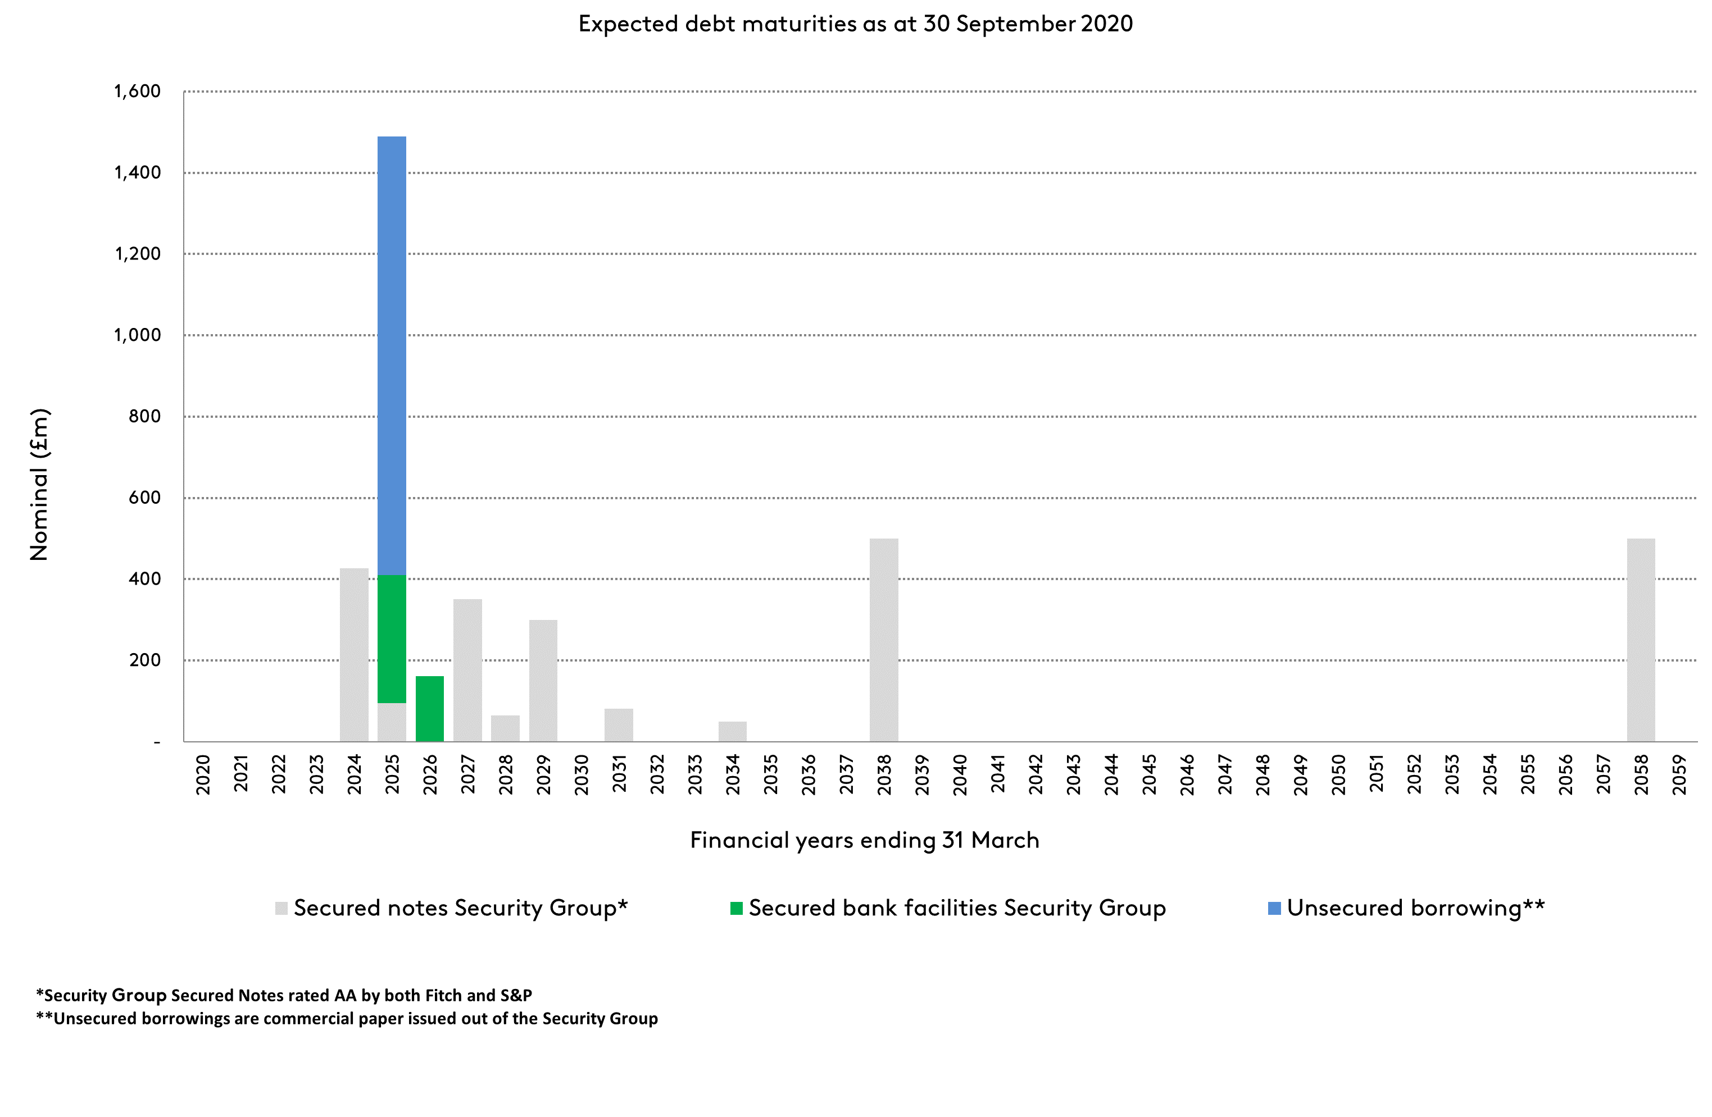 Expected debt maturities as at 30 September 2020 graph